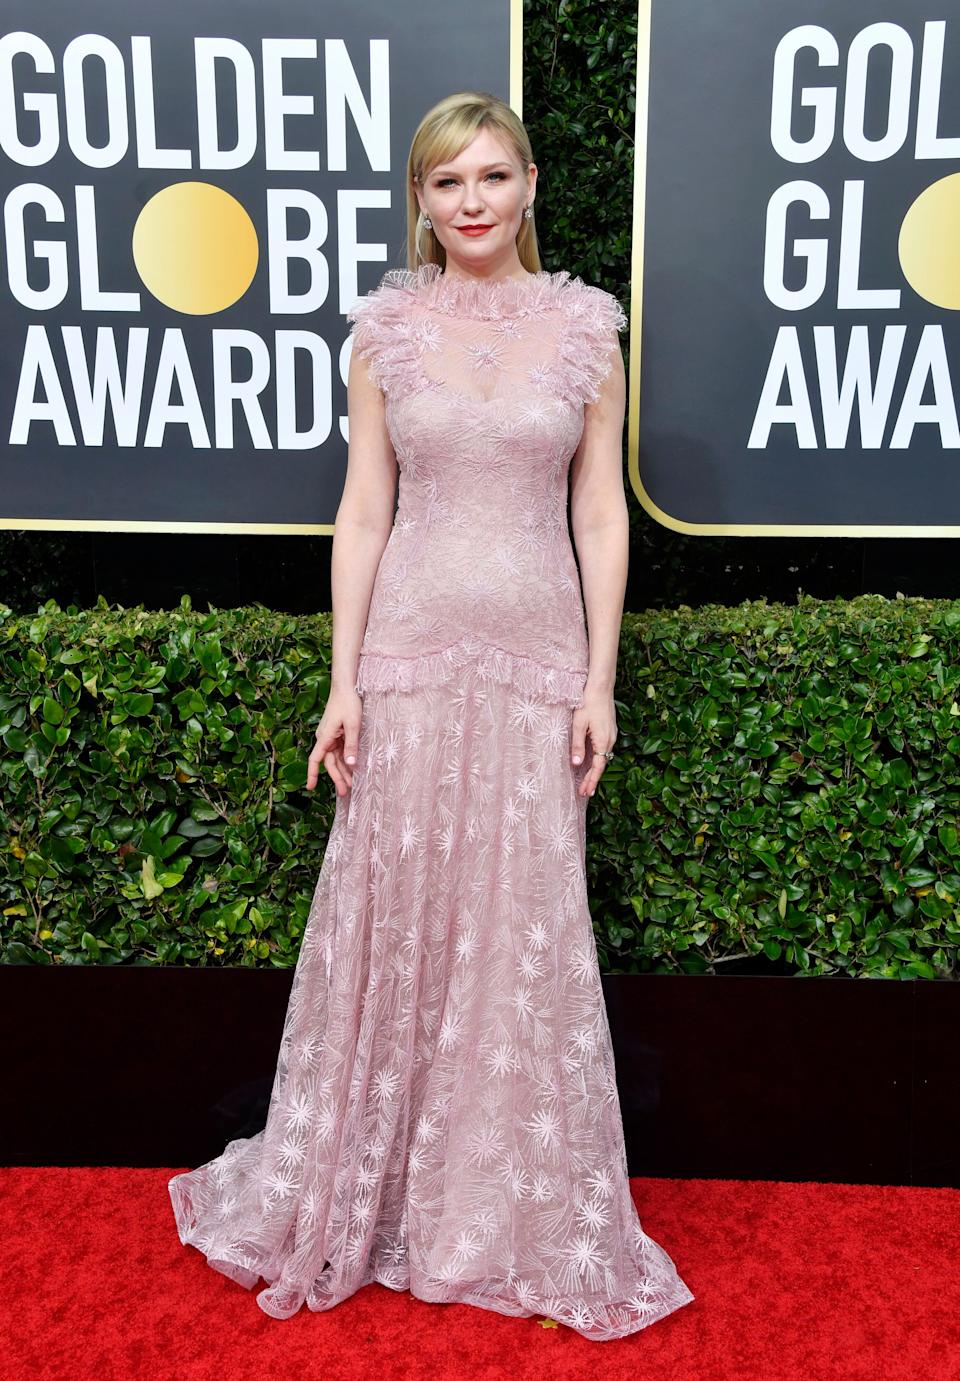 """This gorgeous Rodarte gown has all the grit and whimsy you'd expect from Kiki Dunst, who had the grace to tell the red carpet presenters that she loves the new """"Little Women."""" She's a class act, with one of the best dresses of the night."""